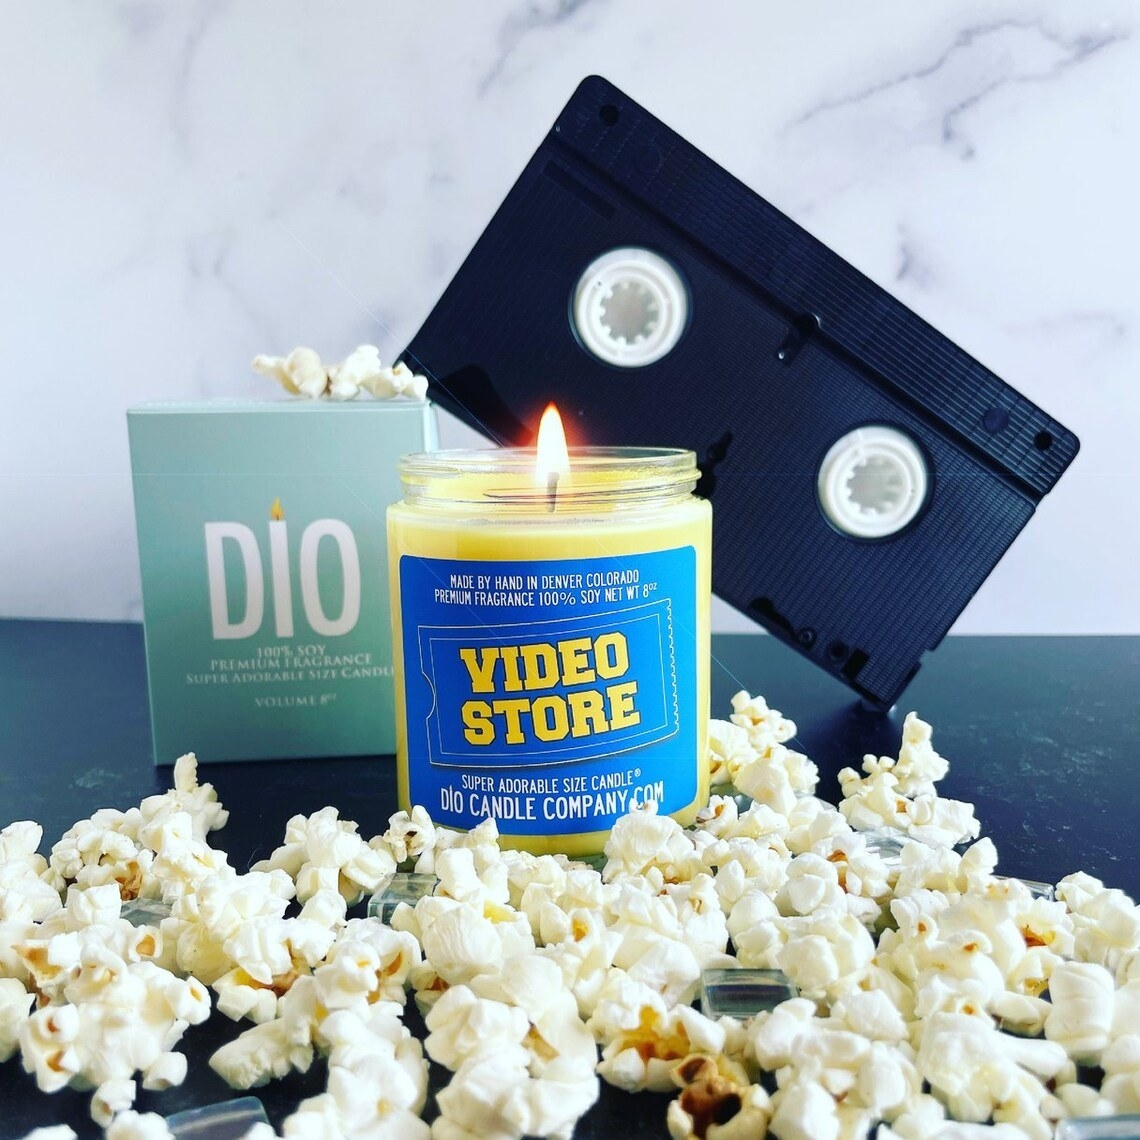 The candle that reads Video Store in the Blockbuster font and logo